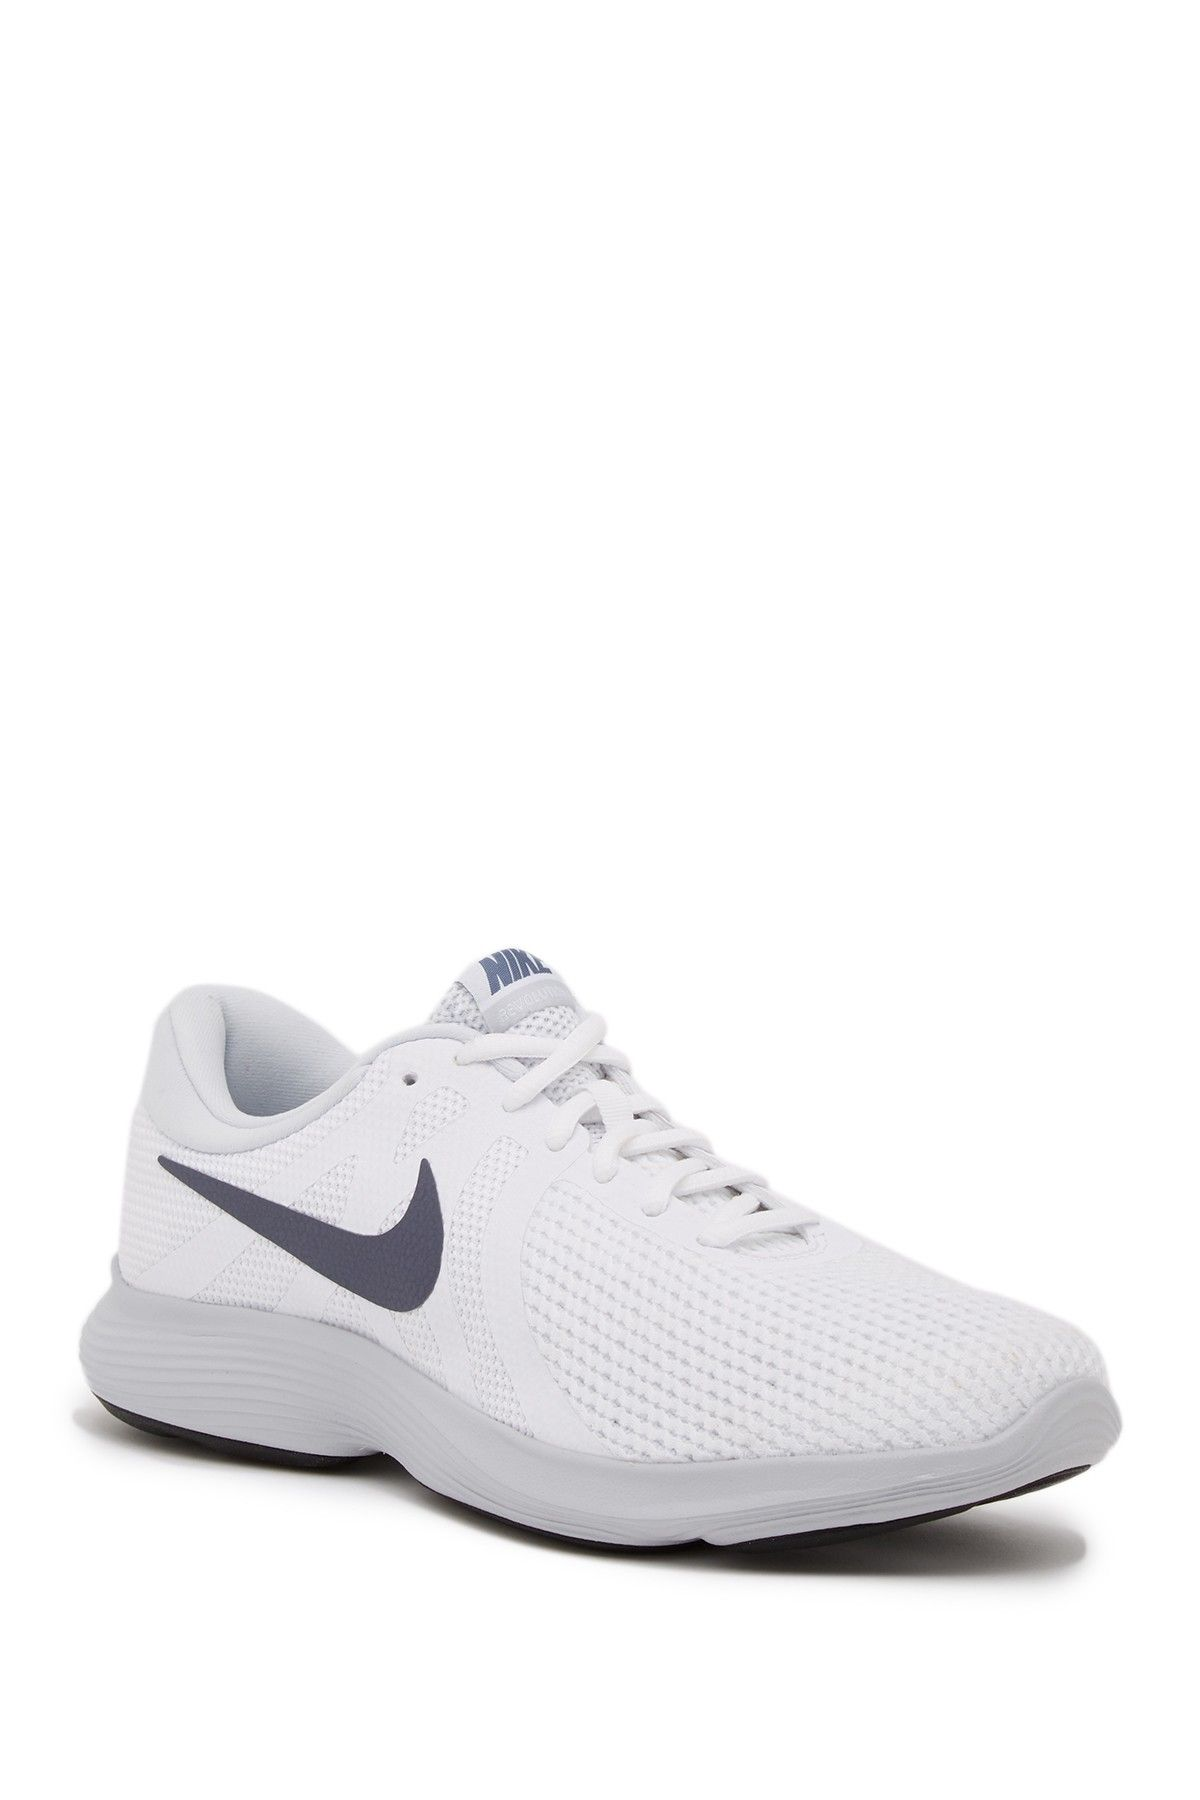 buy online cdf27 ad3d9 Nike - Revolution 4 Sneaker. Free Shipping on orders over  100.